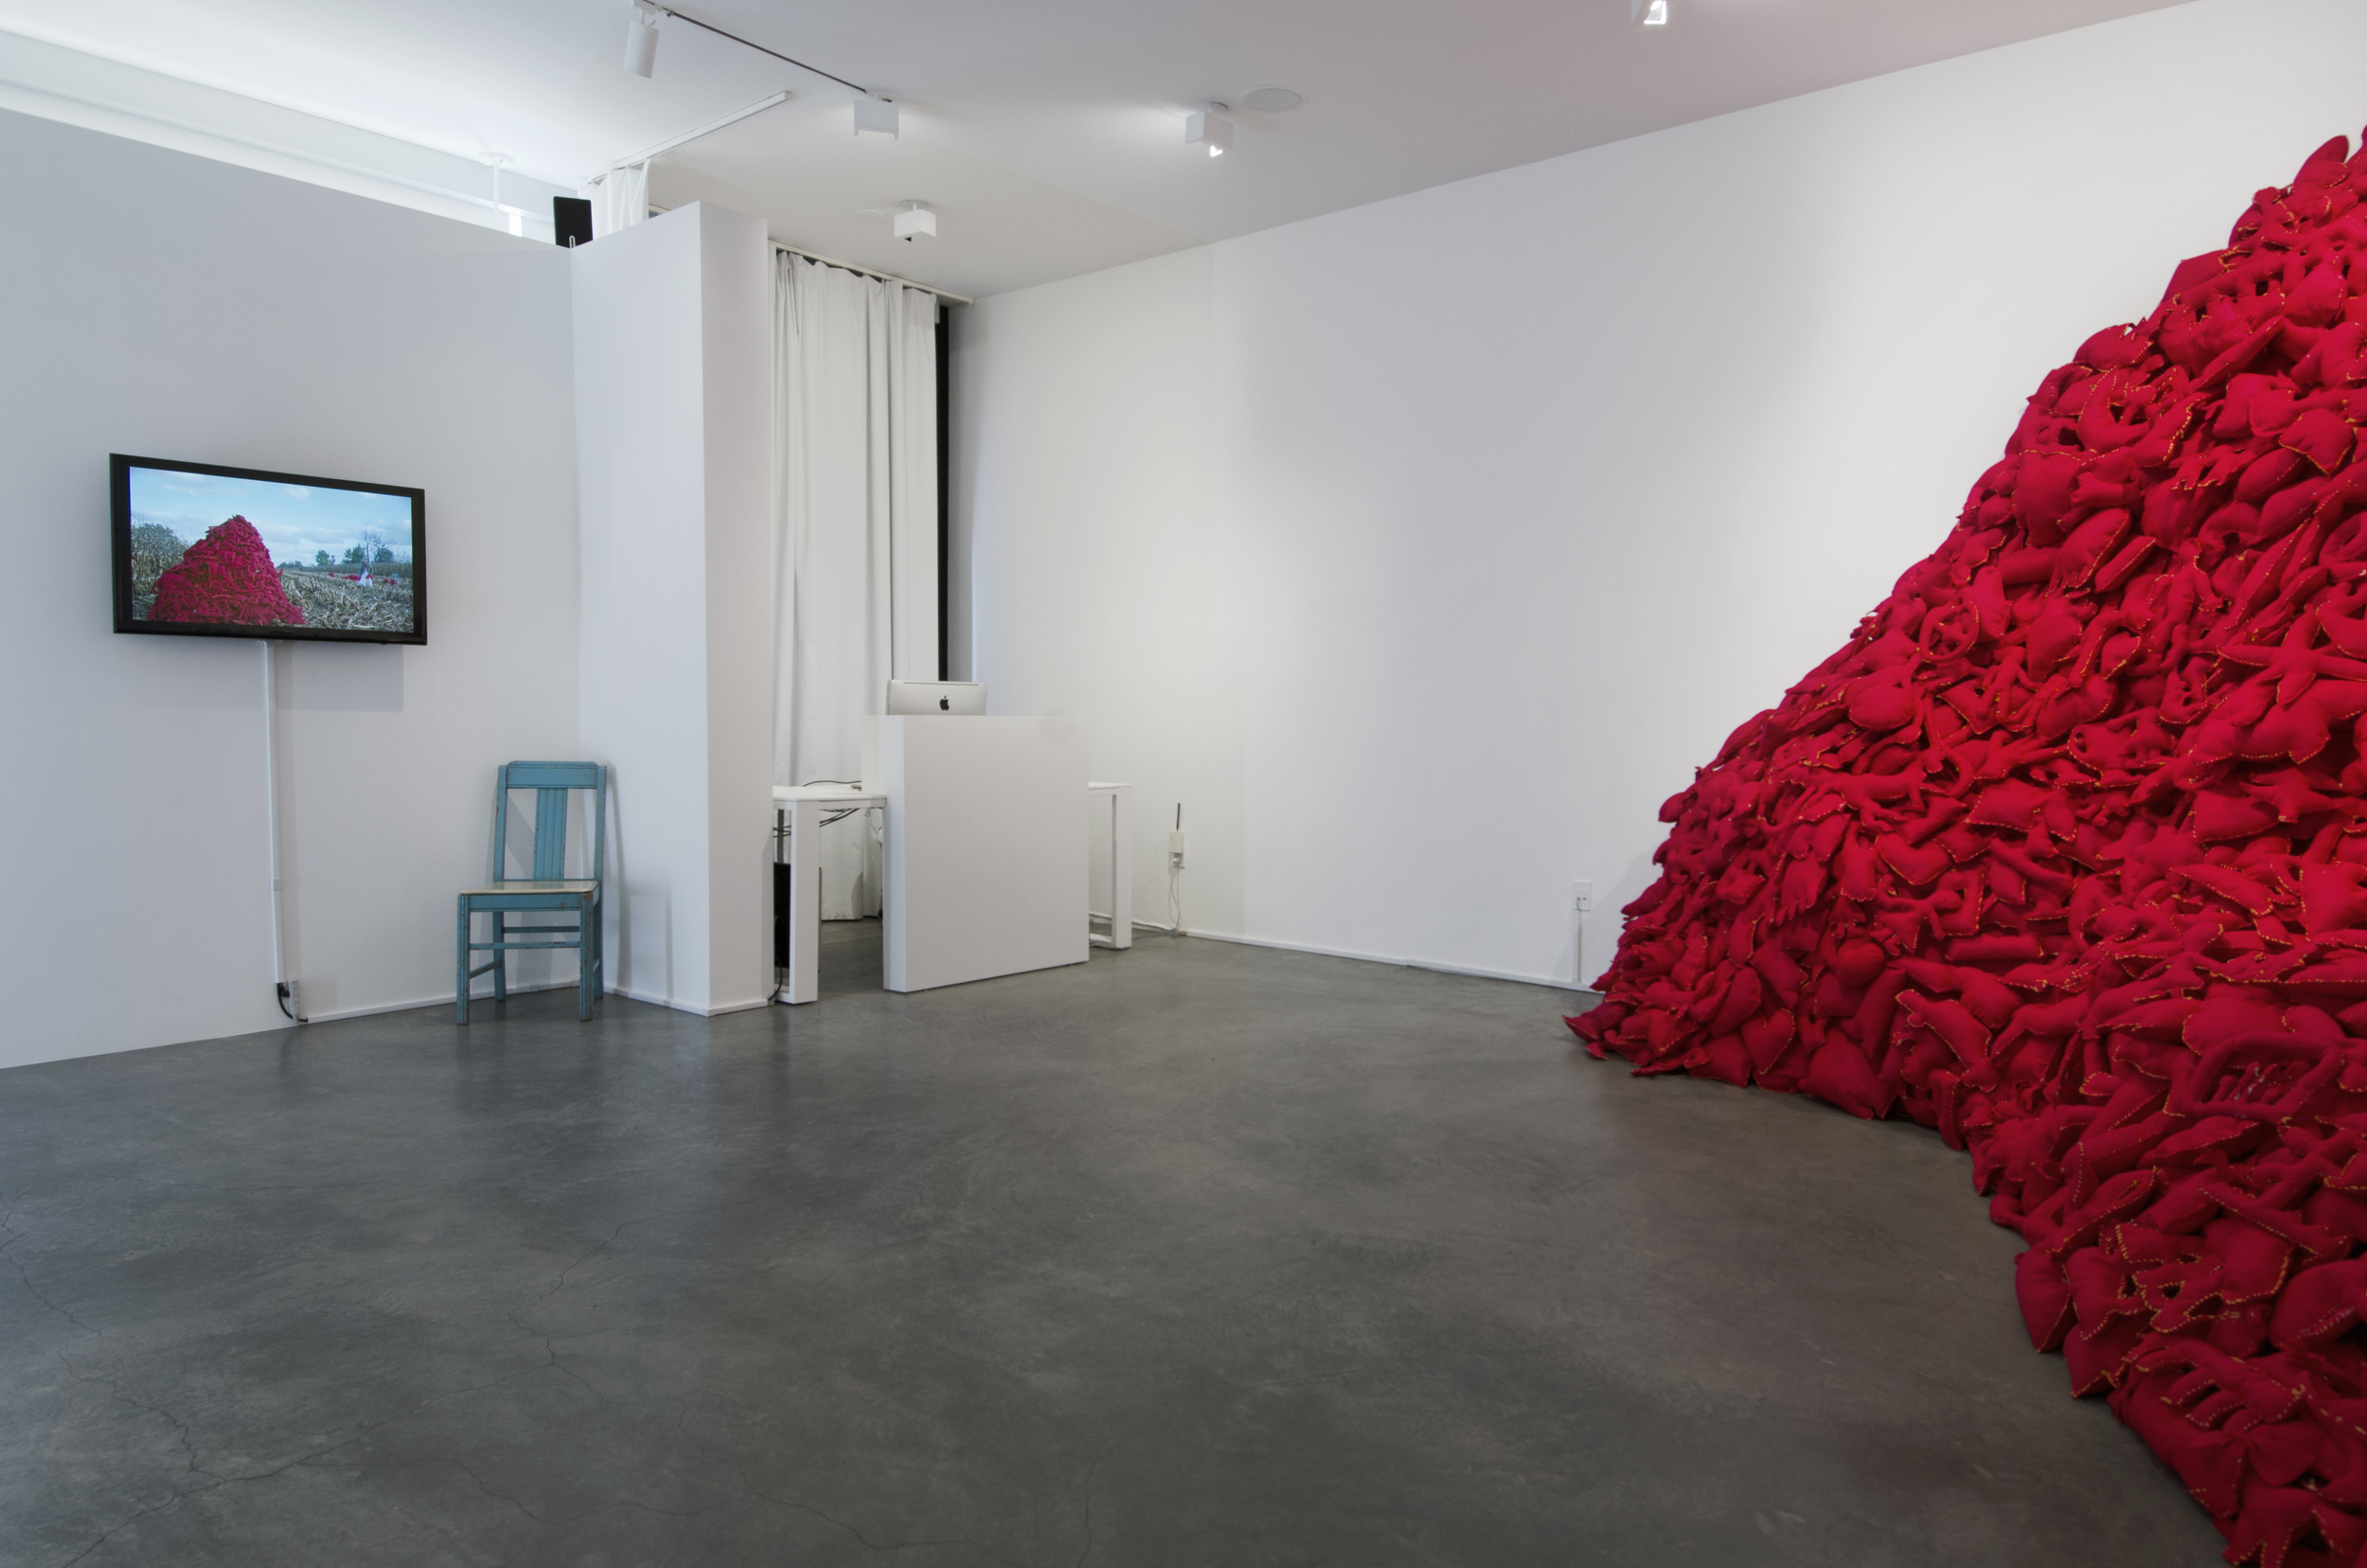 Installation View  (Shulamit Gallery, 2014)   The Pile,  2014 Single Channel HD Video Projection with Sound (16mm Film), TRT 12:00, Looping; Digital C-Prints; Hand-Stitched Red Felt Objects Installation Dimensions Variable